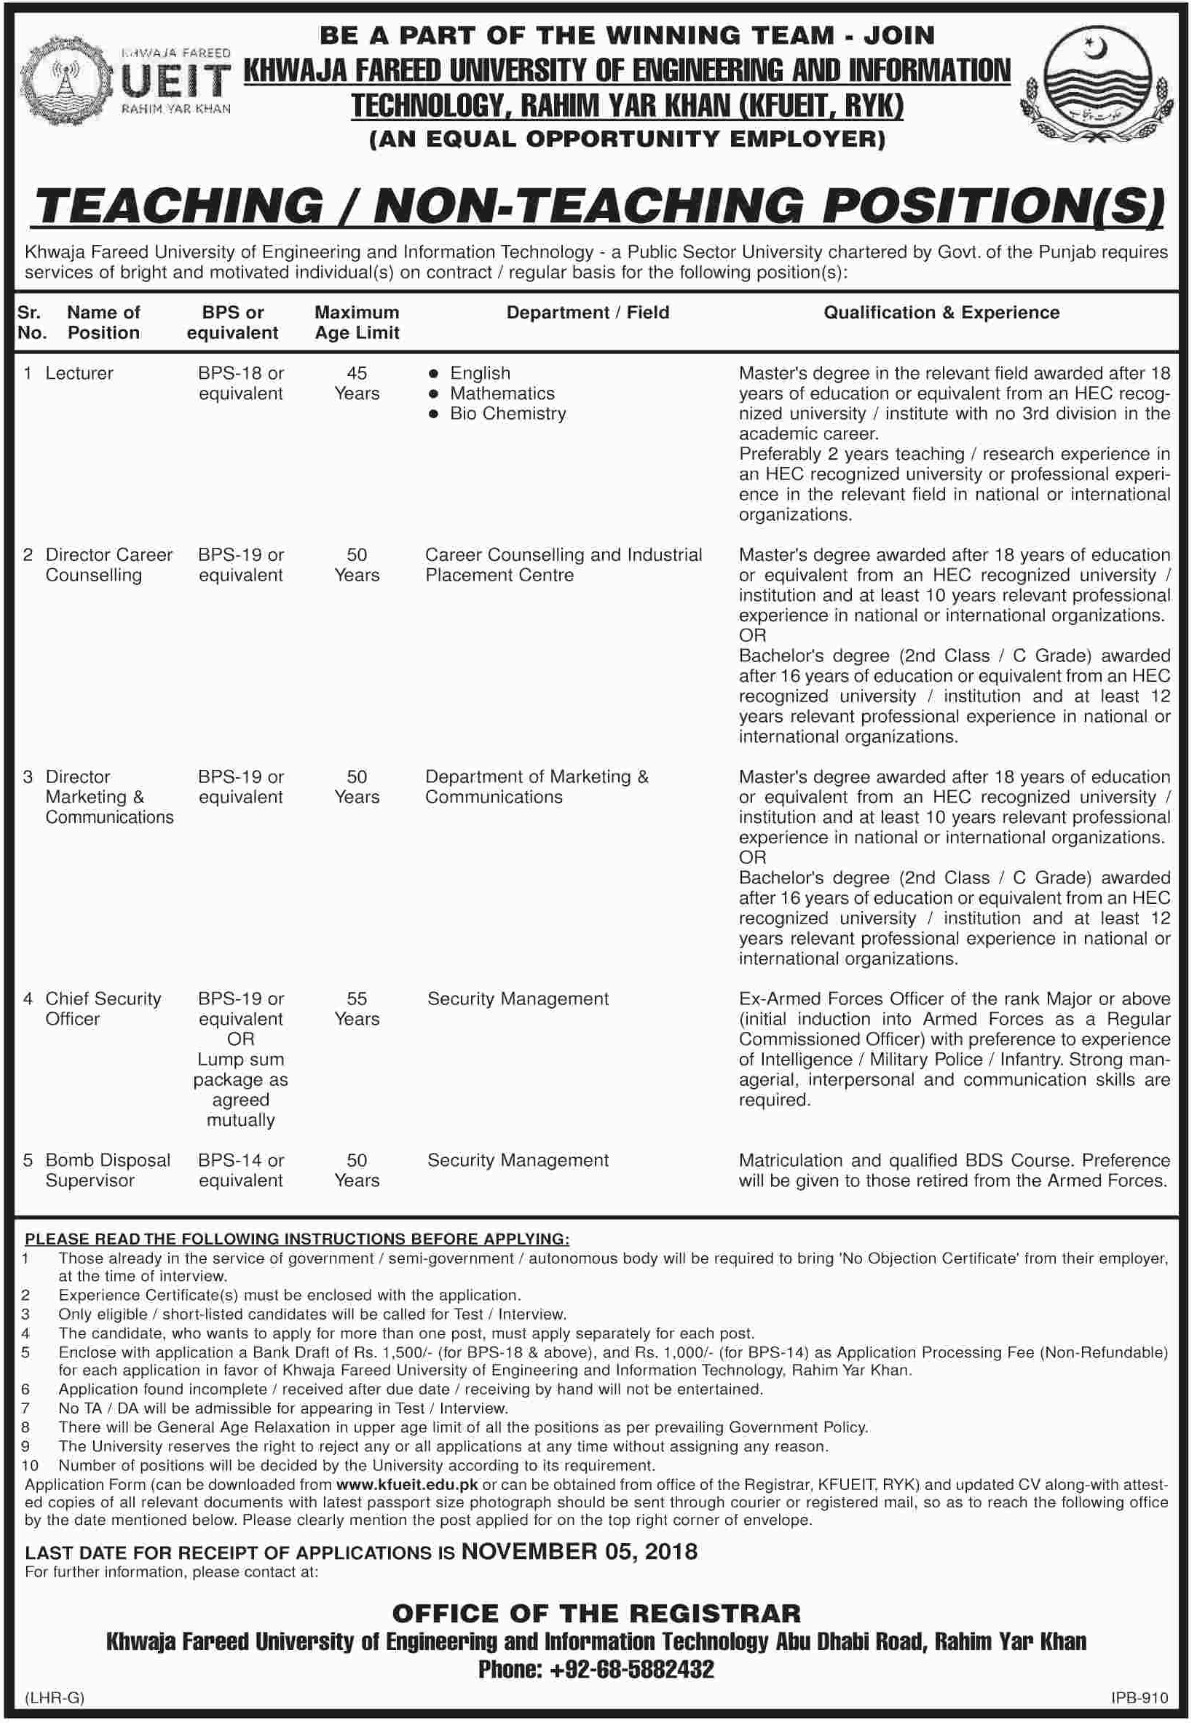 Khwaja Fareed University R.Y.Khan Latest Jobs 2018